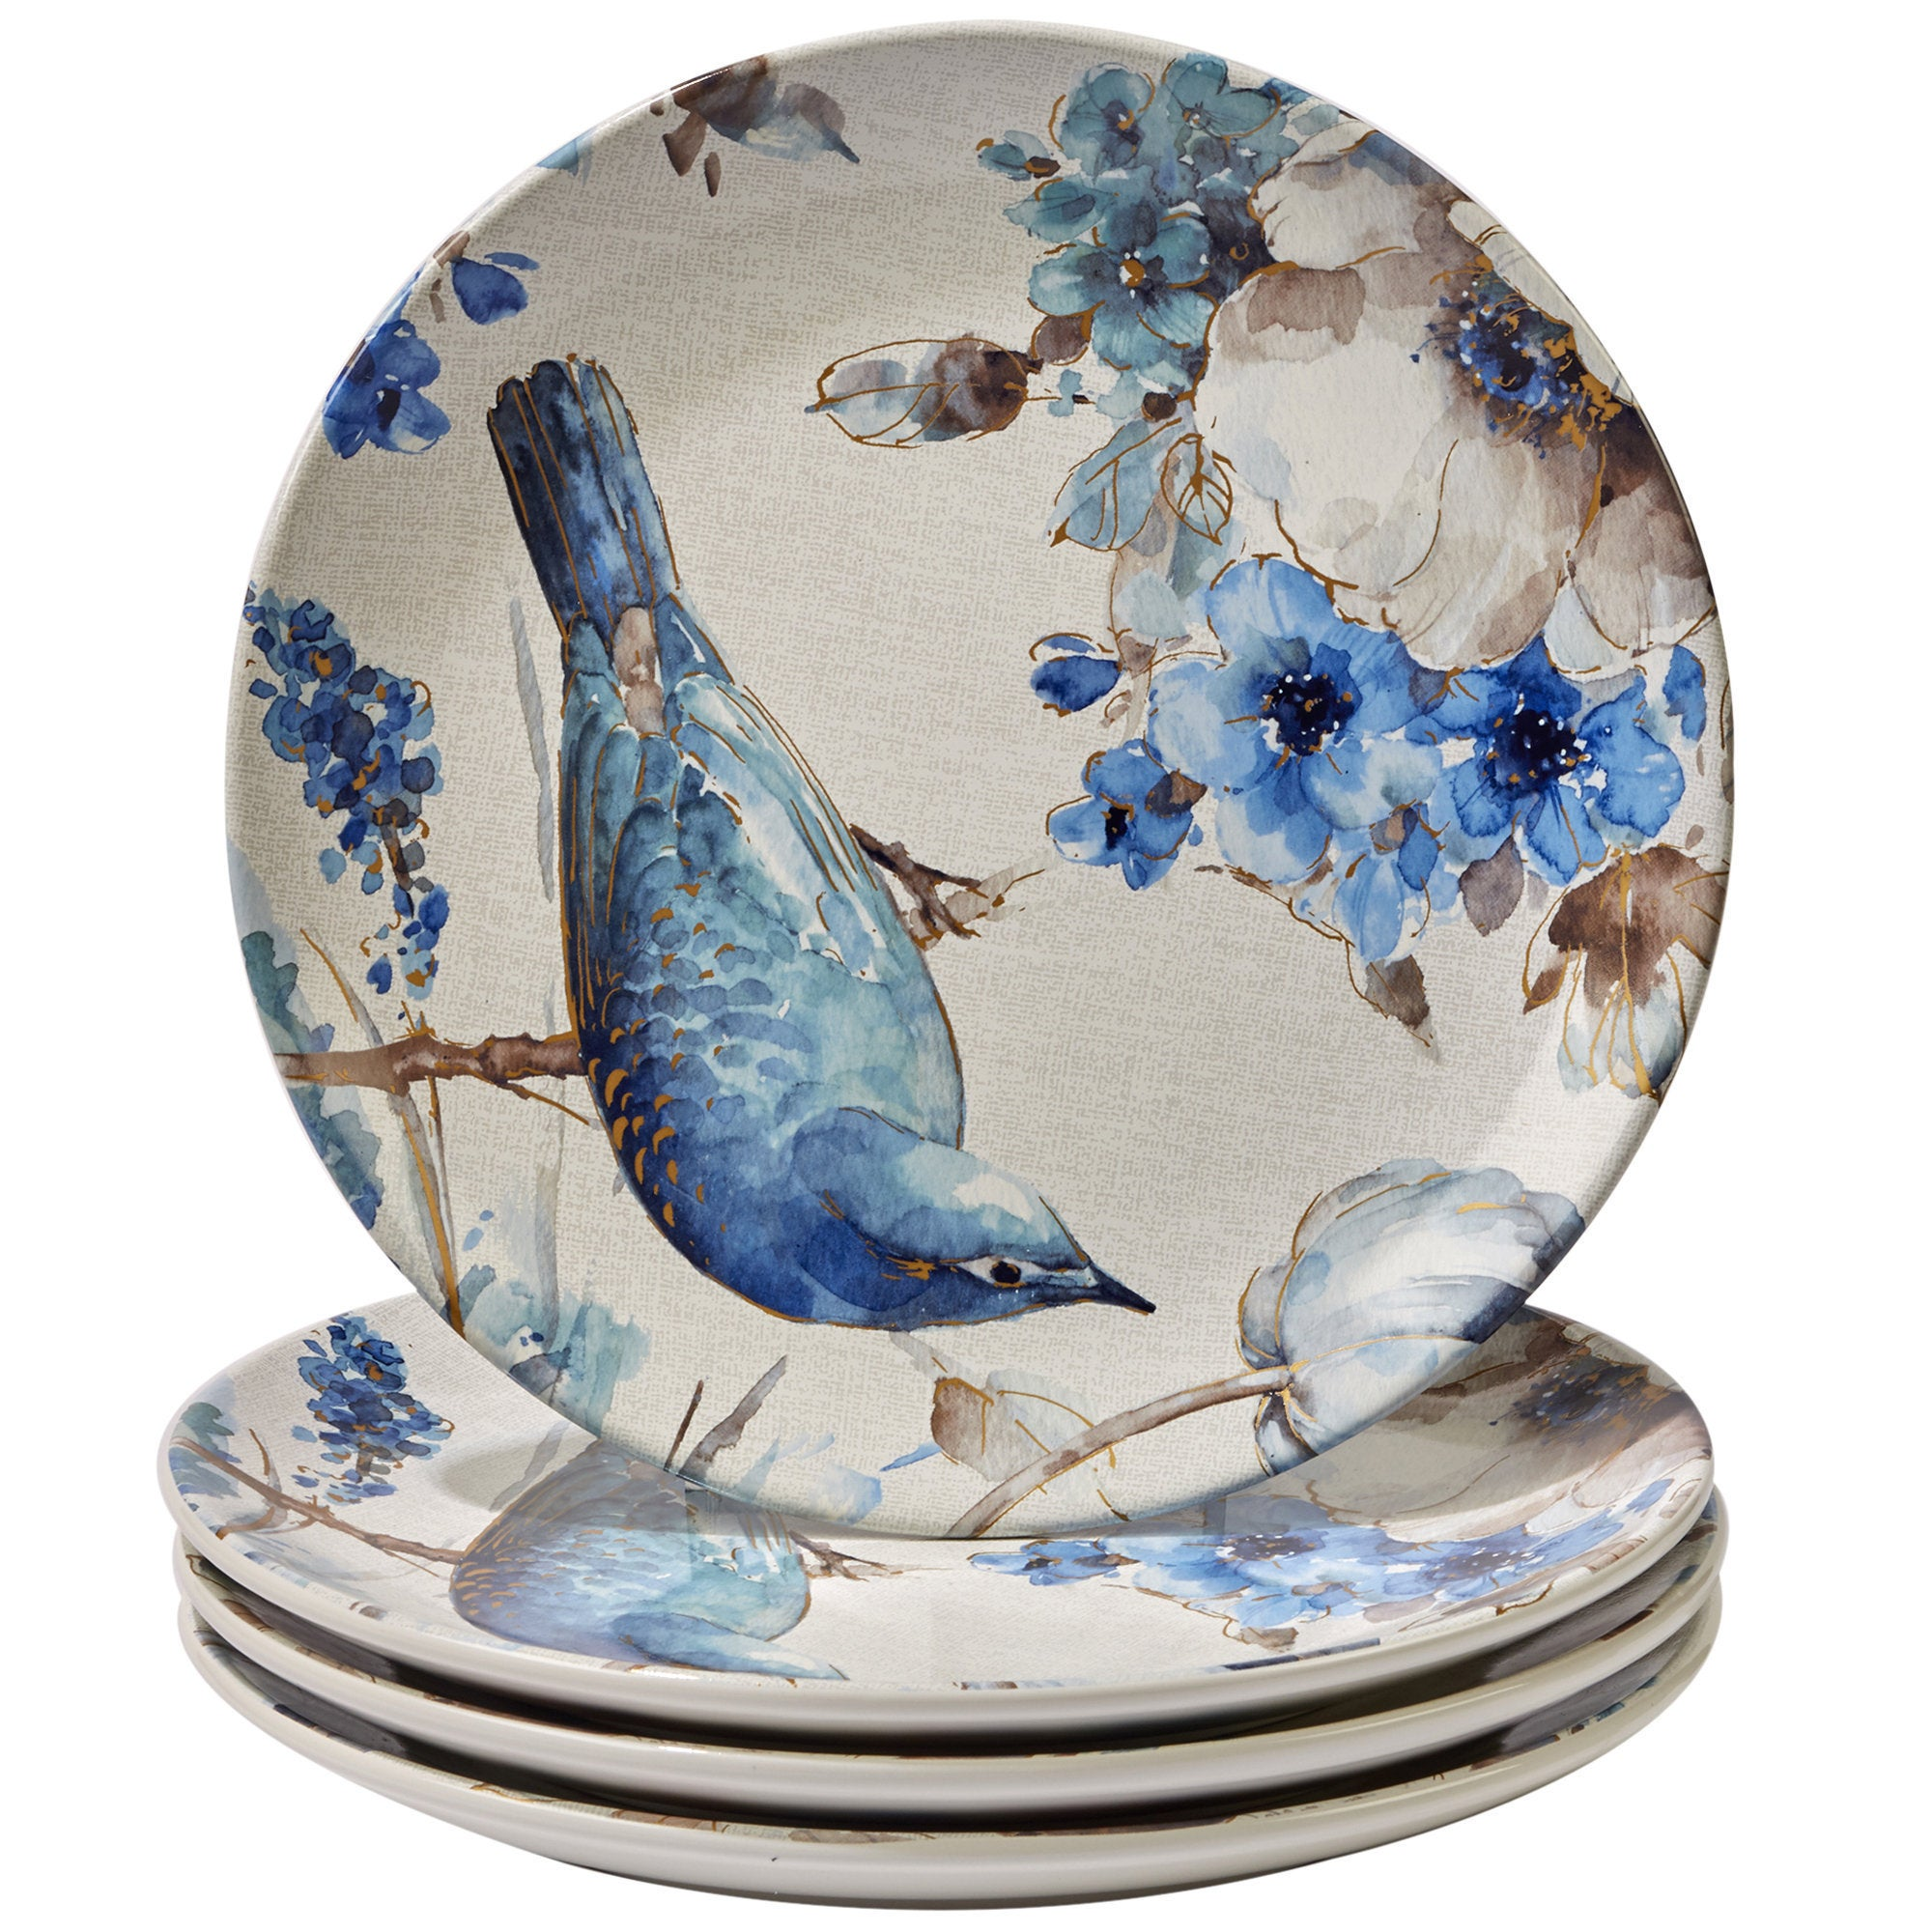 Certified International Indigold Ceramic 11-inch Bird Dinner Plates (Pack of 4) - Free Shipping Today - Overstock - 20907317  sc 1 st  Overstock.com & Certified International Indigold Ceramic 11-inch Bird Dinner Plates ...